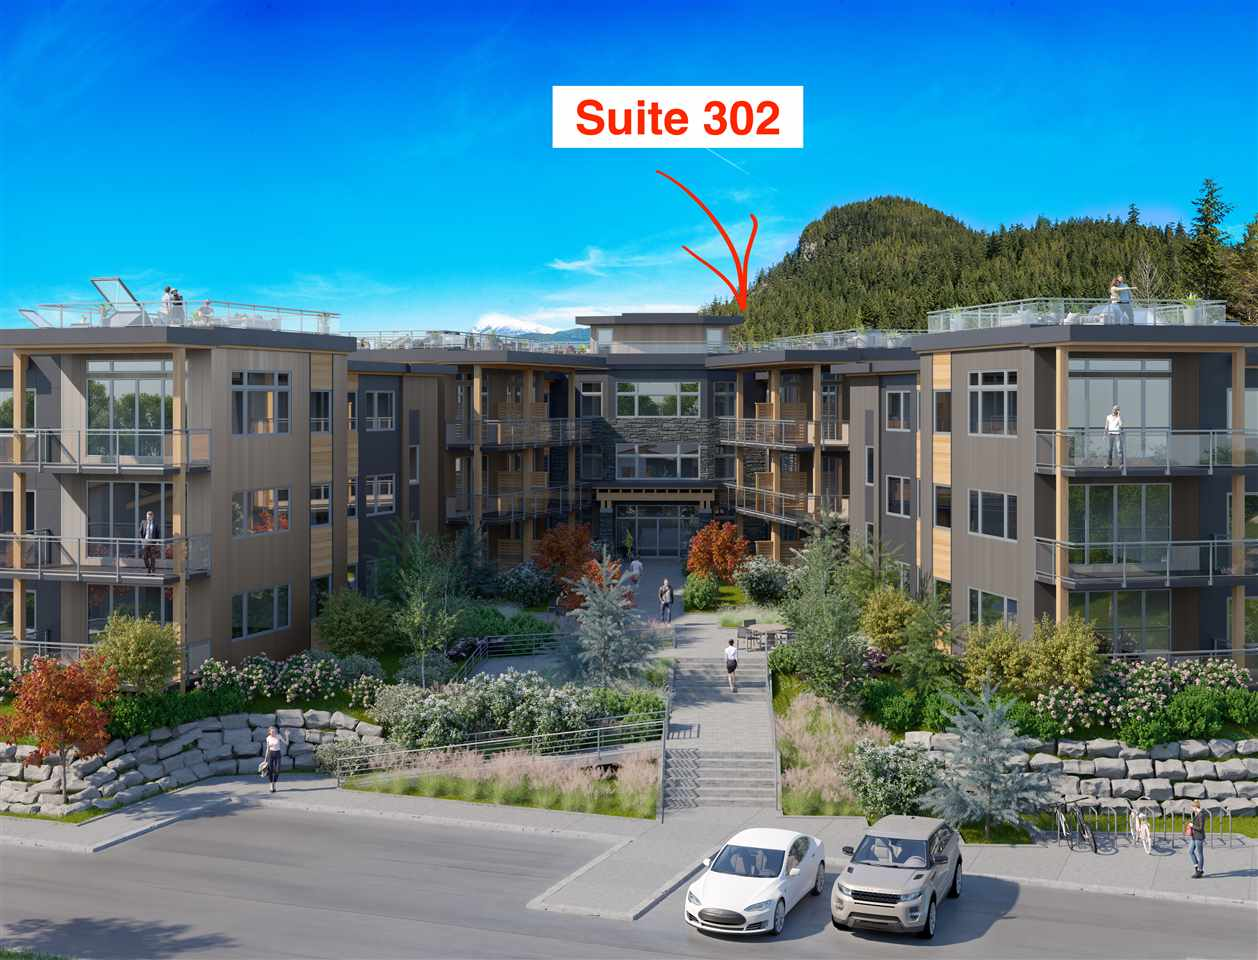 302 41328 SKYRIDGE PLACE - Tantalus Apartment/Condo for sale, 1 Bedroom (R2447928) - #9